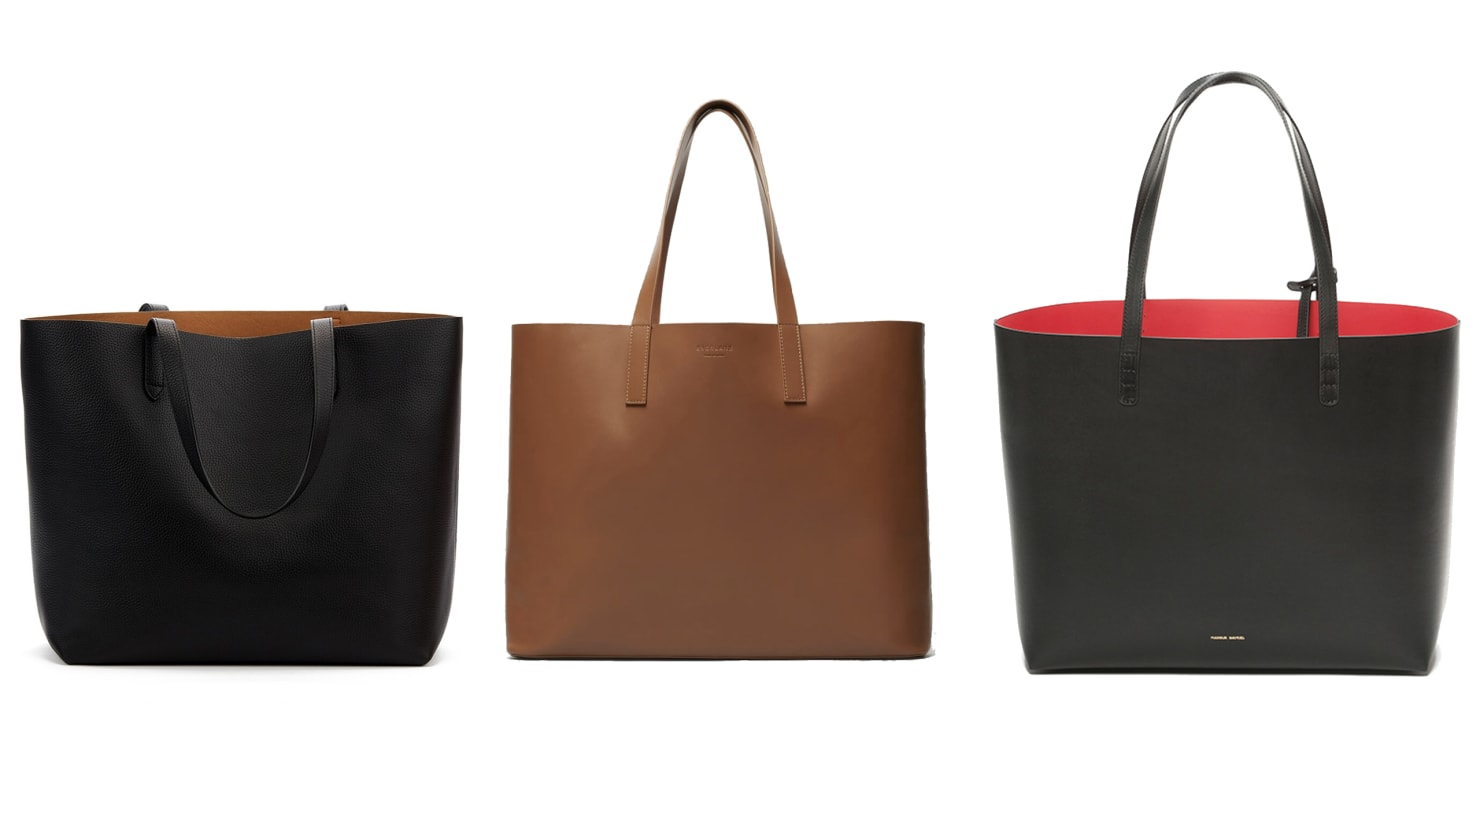 c6bbac46 The Best Leather Tote Bags for Work